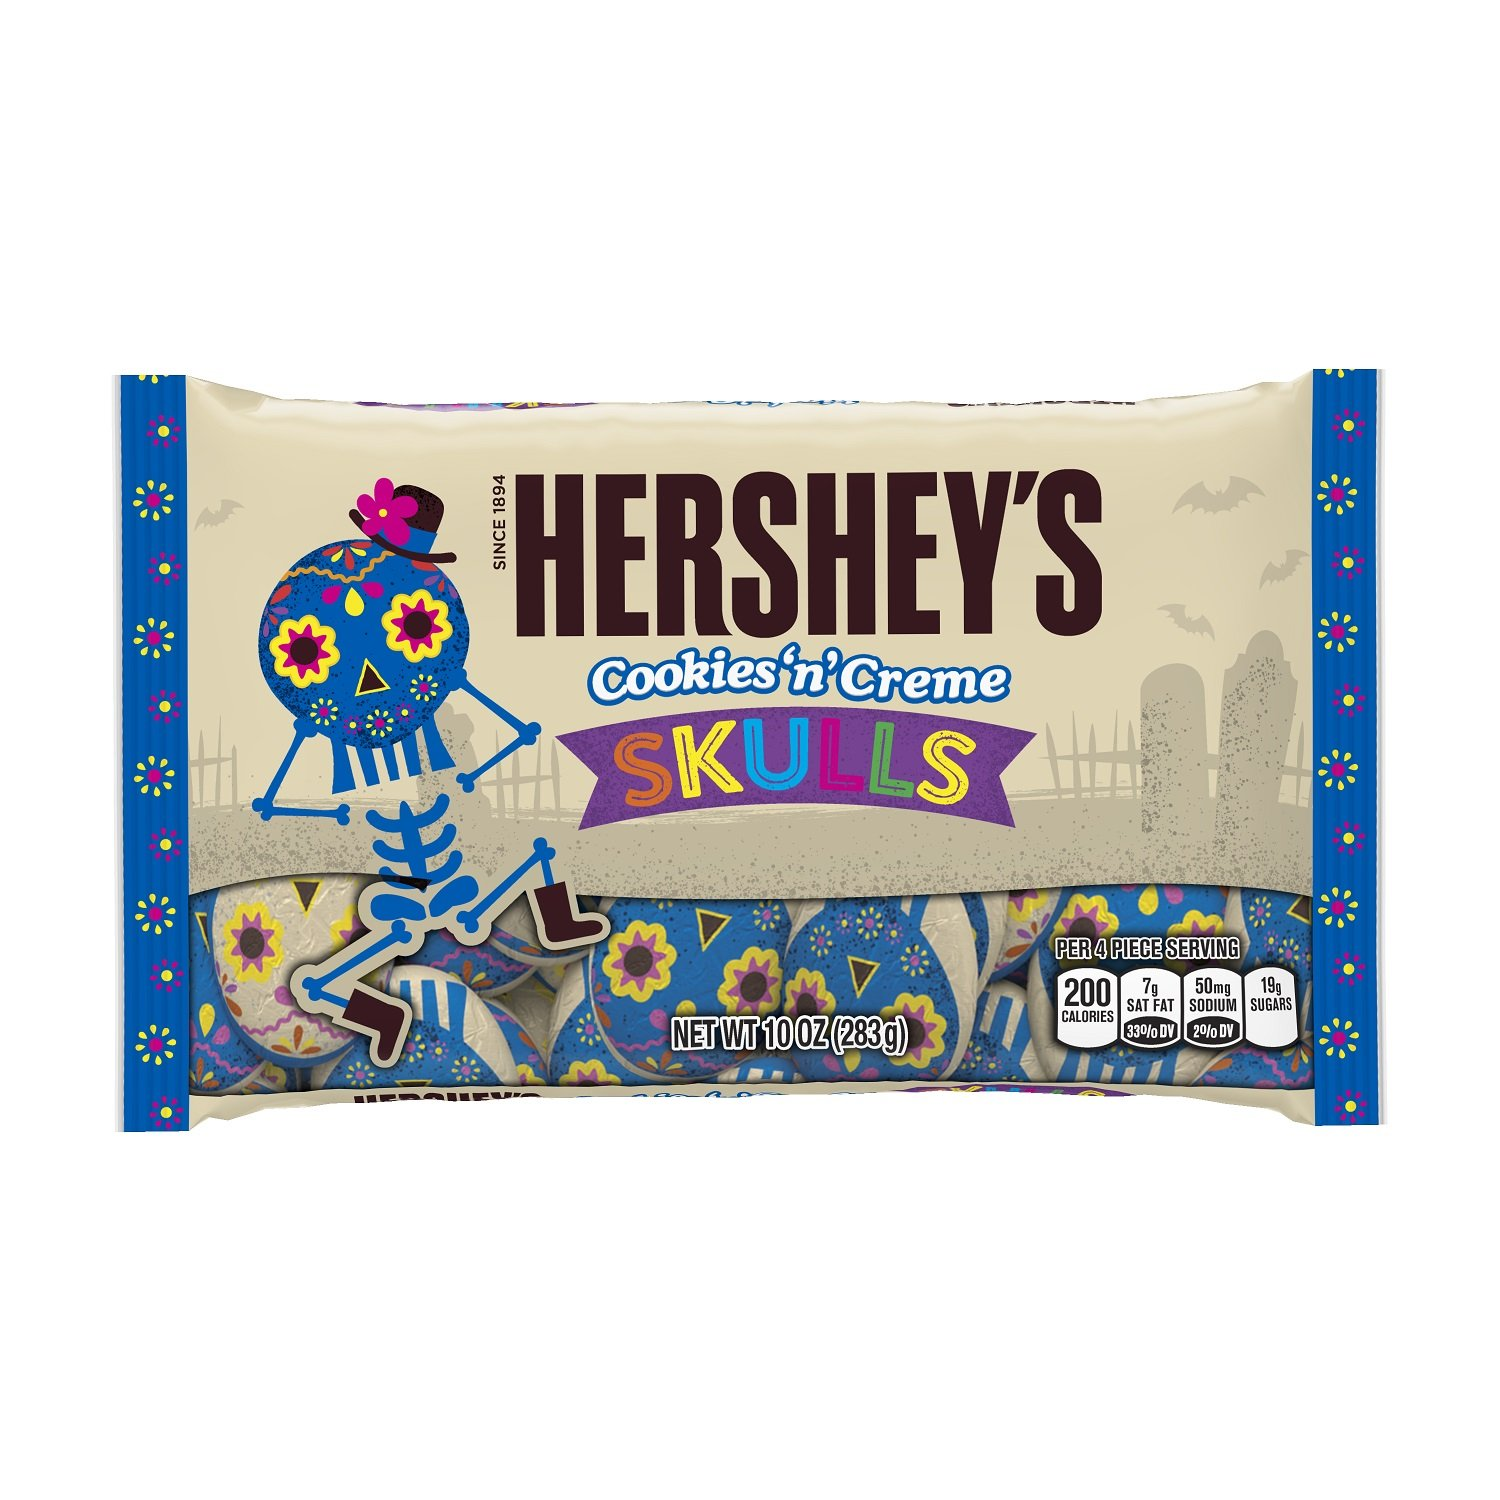 HERSHEY'S Halloween Cookies and Crème Skulls (10-Ounce Bag, Pack of 36) by HERSHEY'S